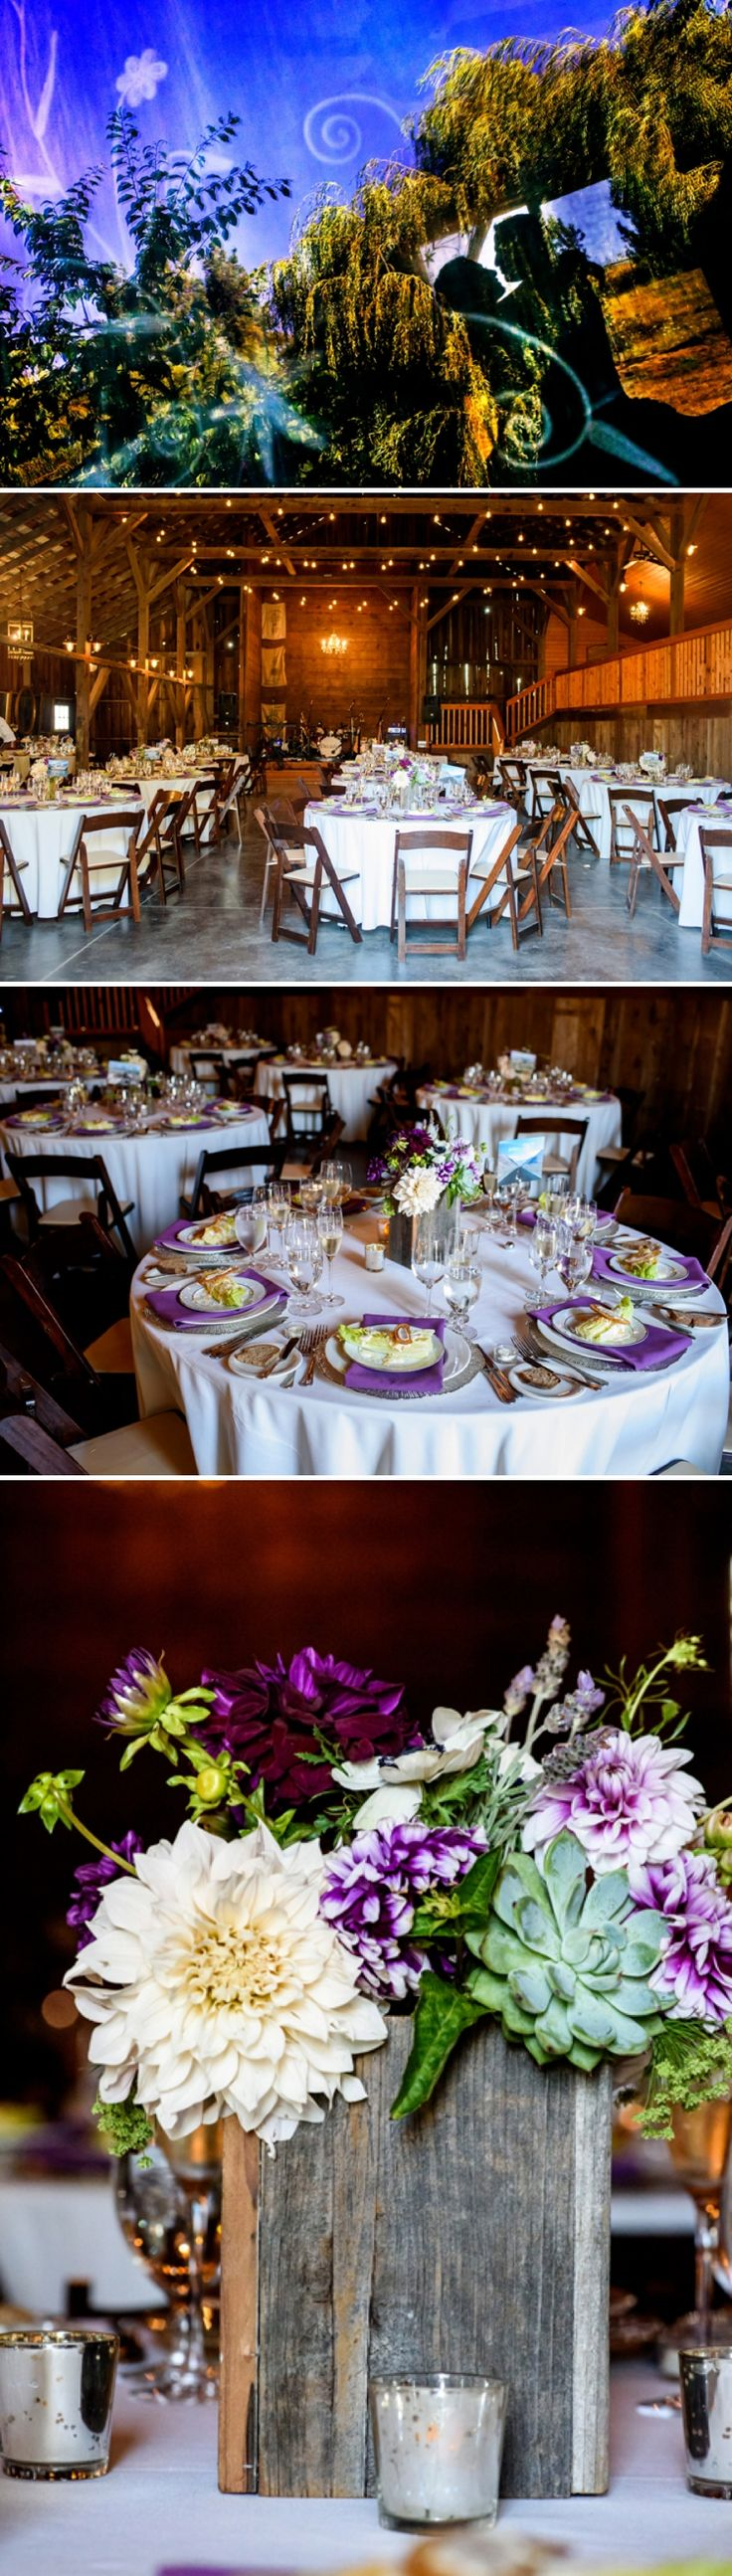 Wedding in a barn / Bouquets of lavender, purple and white dahlias, café au lait dahlias, succulents and anemones / Michael Daigian Design / Vera Wang Bride / a Jewish travel-themed barn wedding / at Olympia's Valley Estate, Petaluma, California, USA / Photography by Chrisman Studios / http://www.smashingtheglass.com/2016/08/02/vera-wang-bride-jewish-travel-themed-barn-wedding-olympias-valley-estate-petaluma-california-usa/